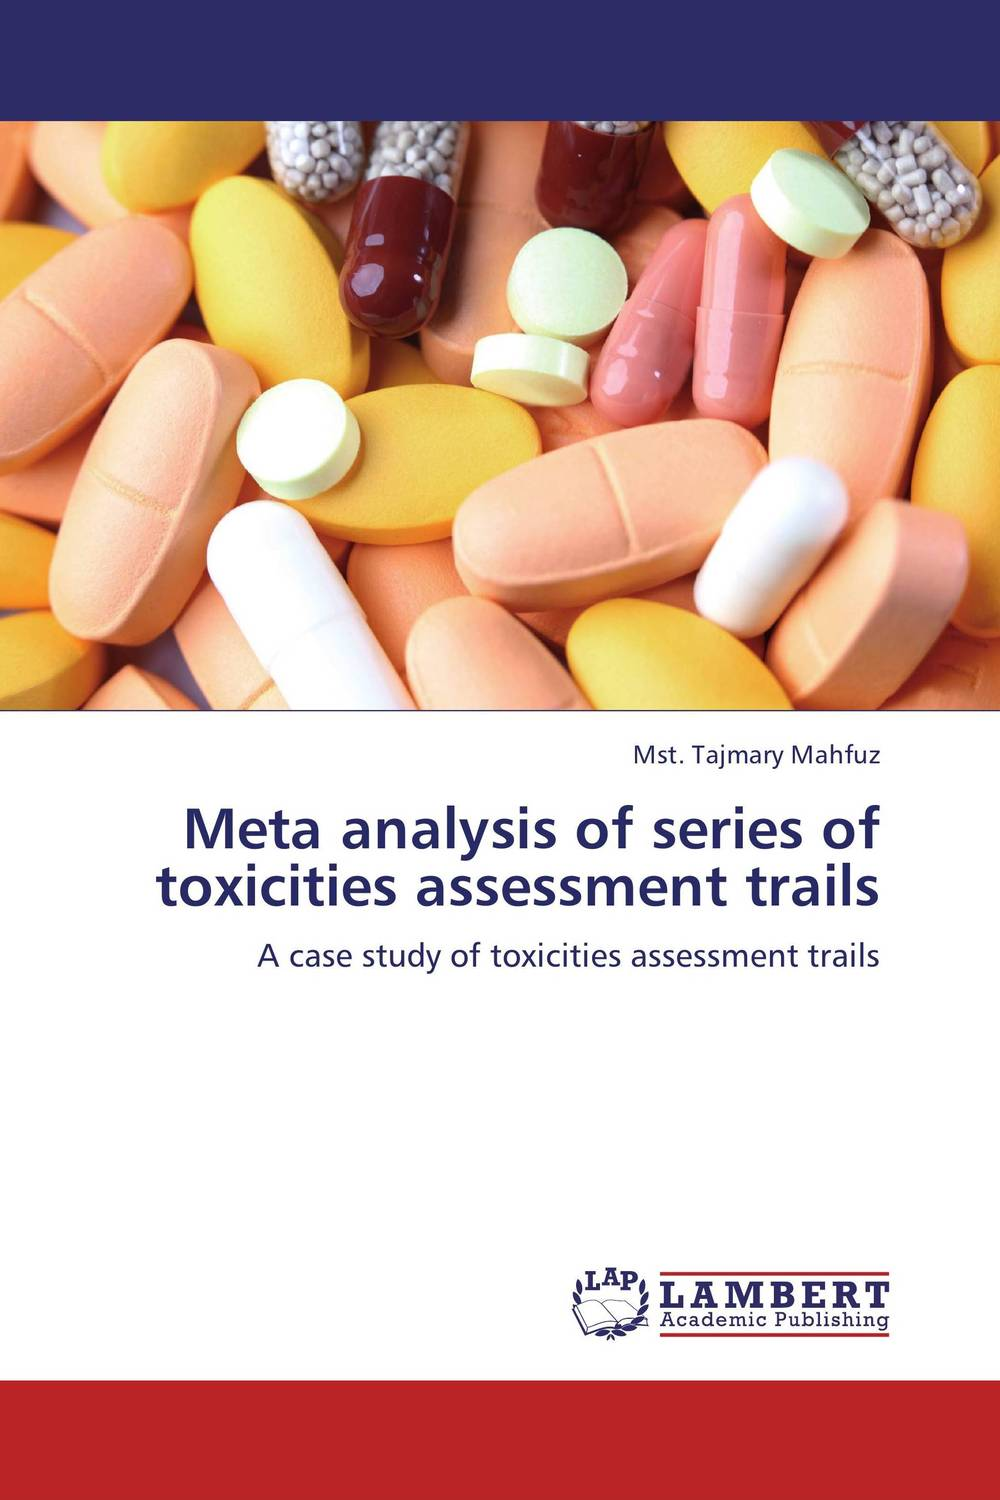 Meta analysis of series of toxicities assessment trails tanka khanal gastro intestinal helminth parasites in white rumped captive vulture